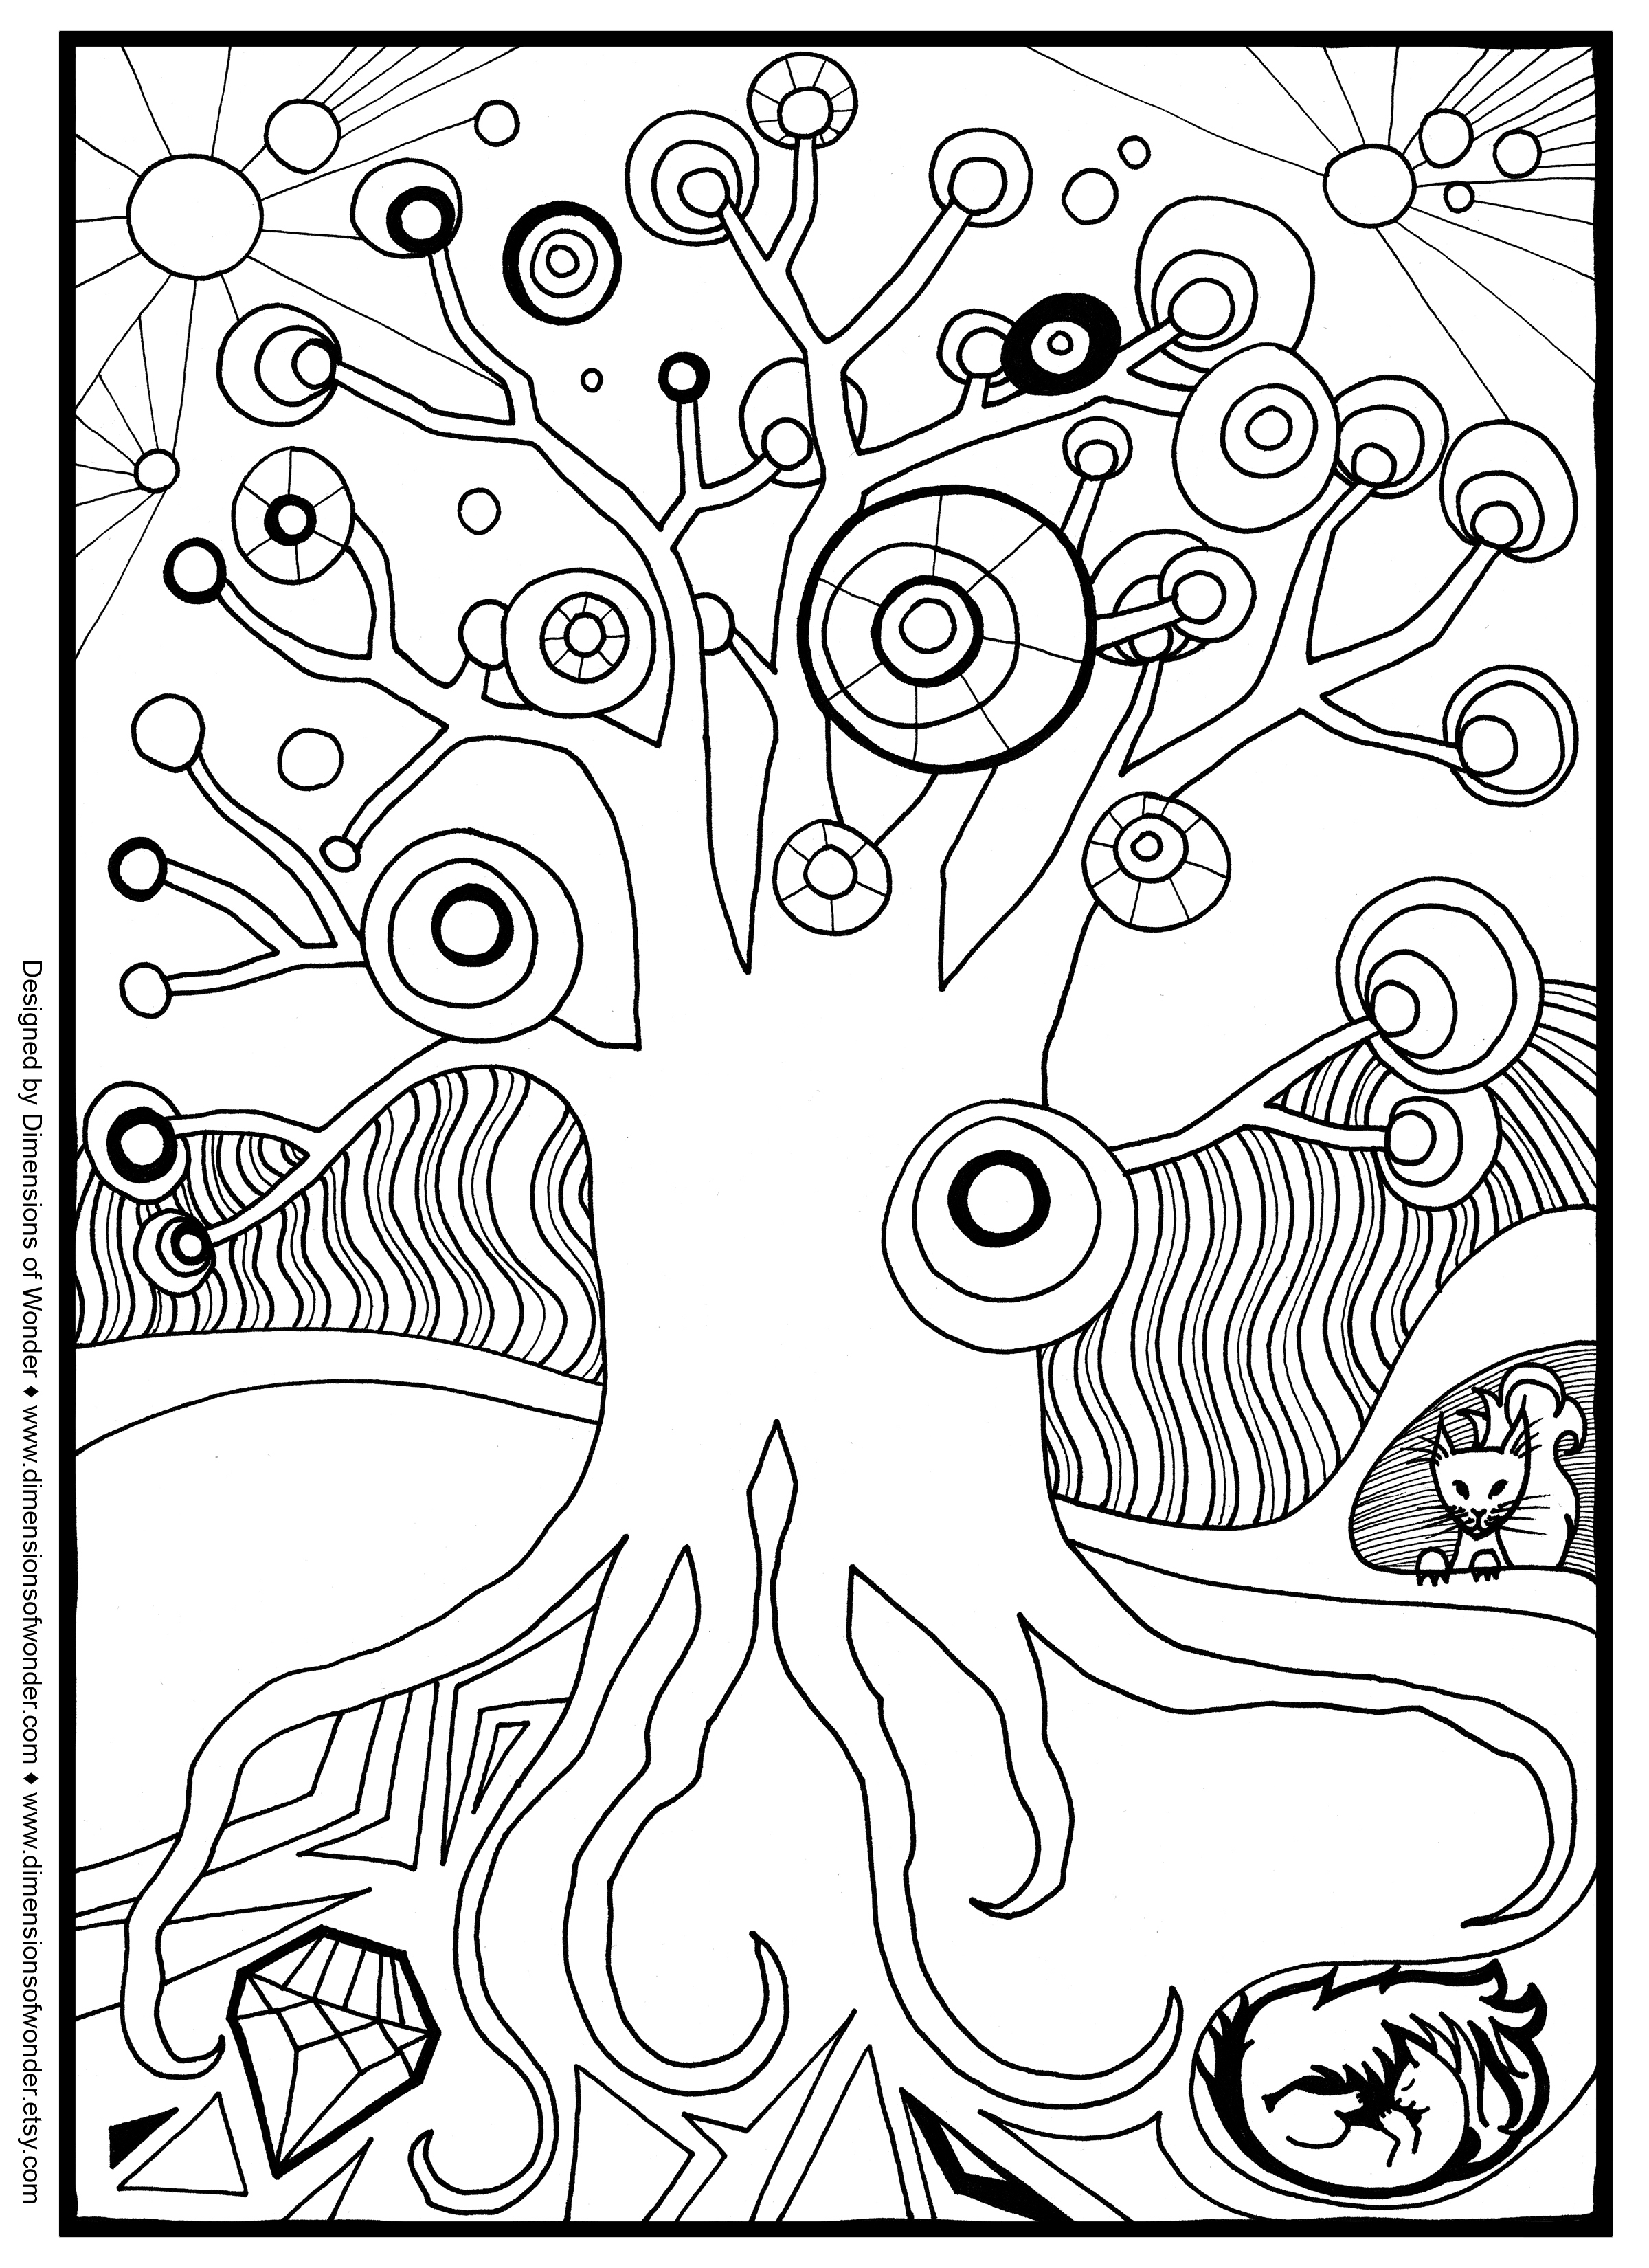 Winter Coloring Pages Printable Coloring Pages Free Coloring Pages Of Christmas Adding Winter